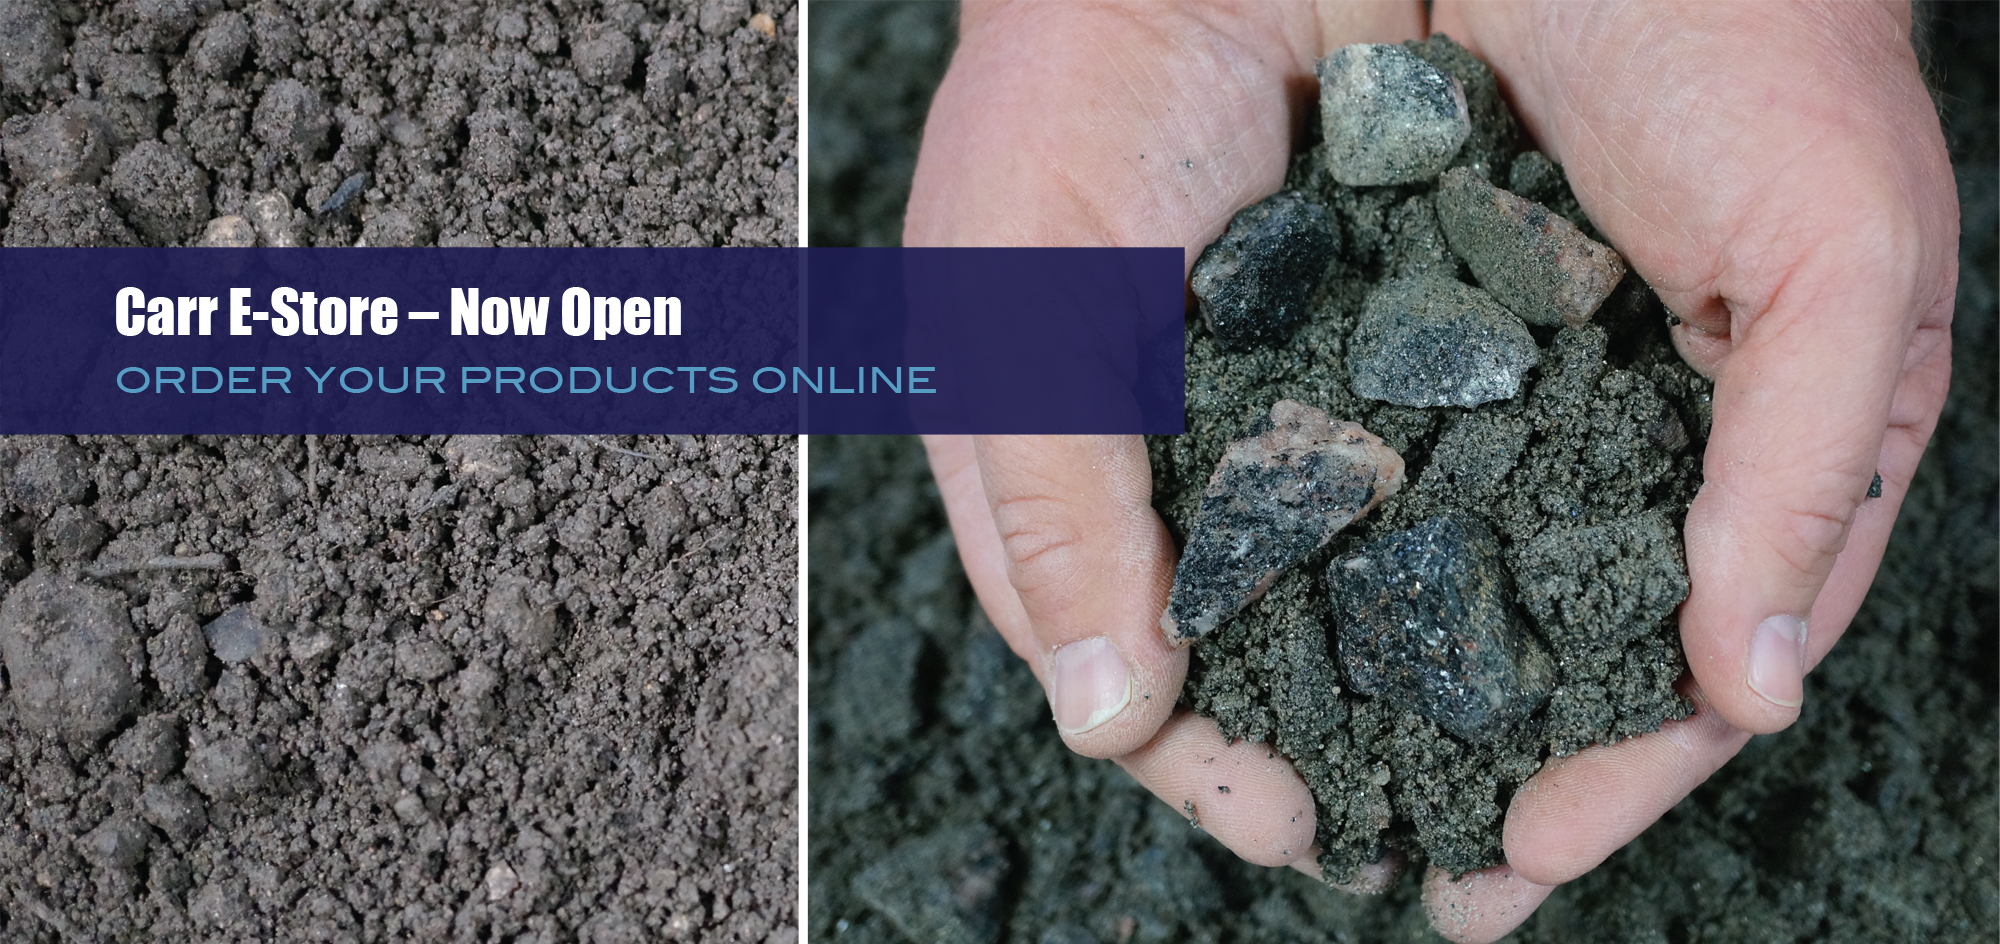 Carr E- Store - Now Open, Order Your Products Online at Carr Aggregates.